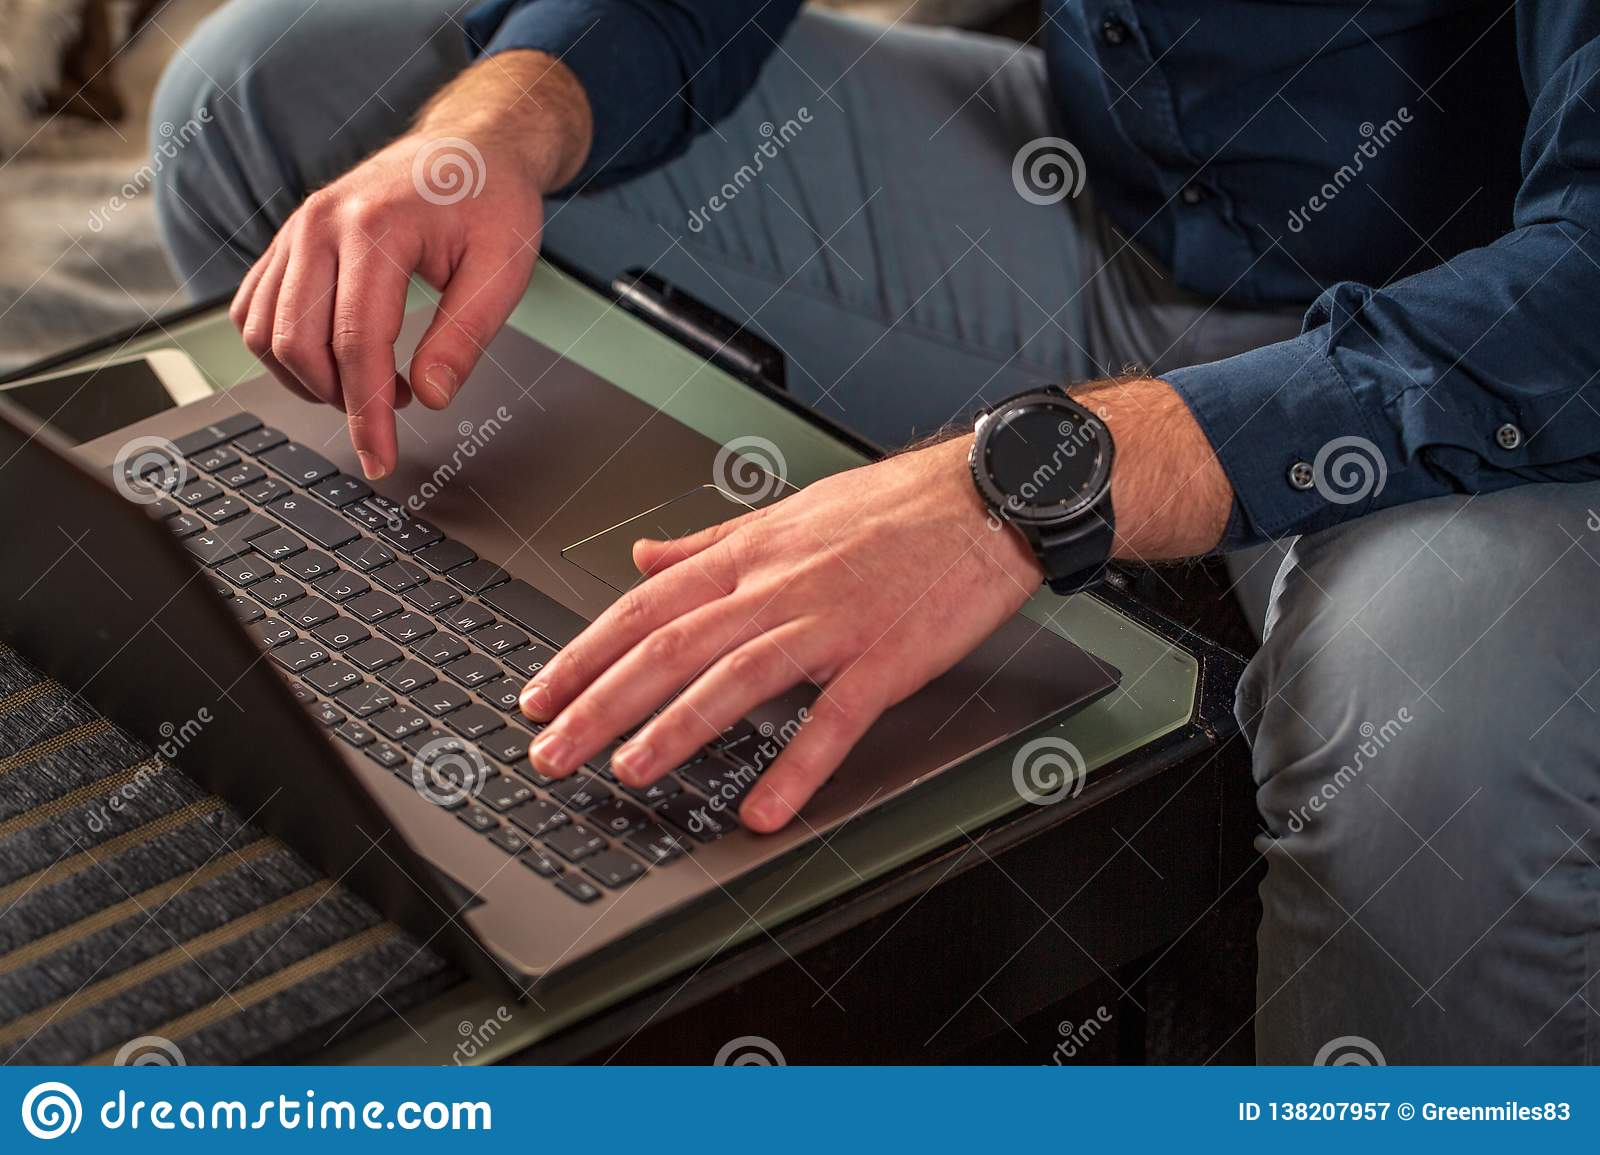 Male hands typing on laptop keyboard